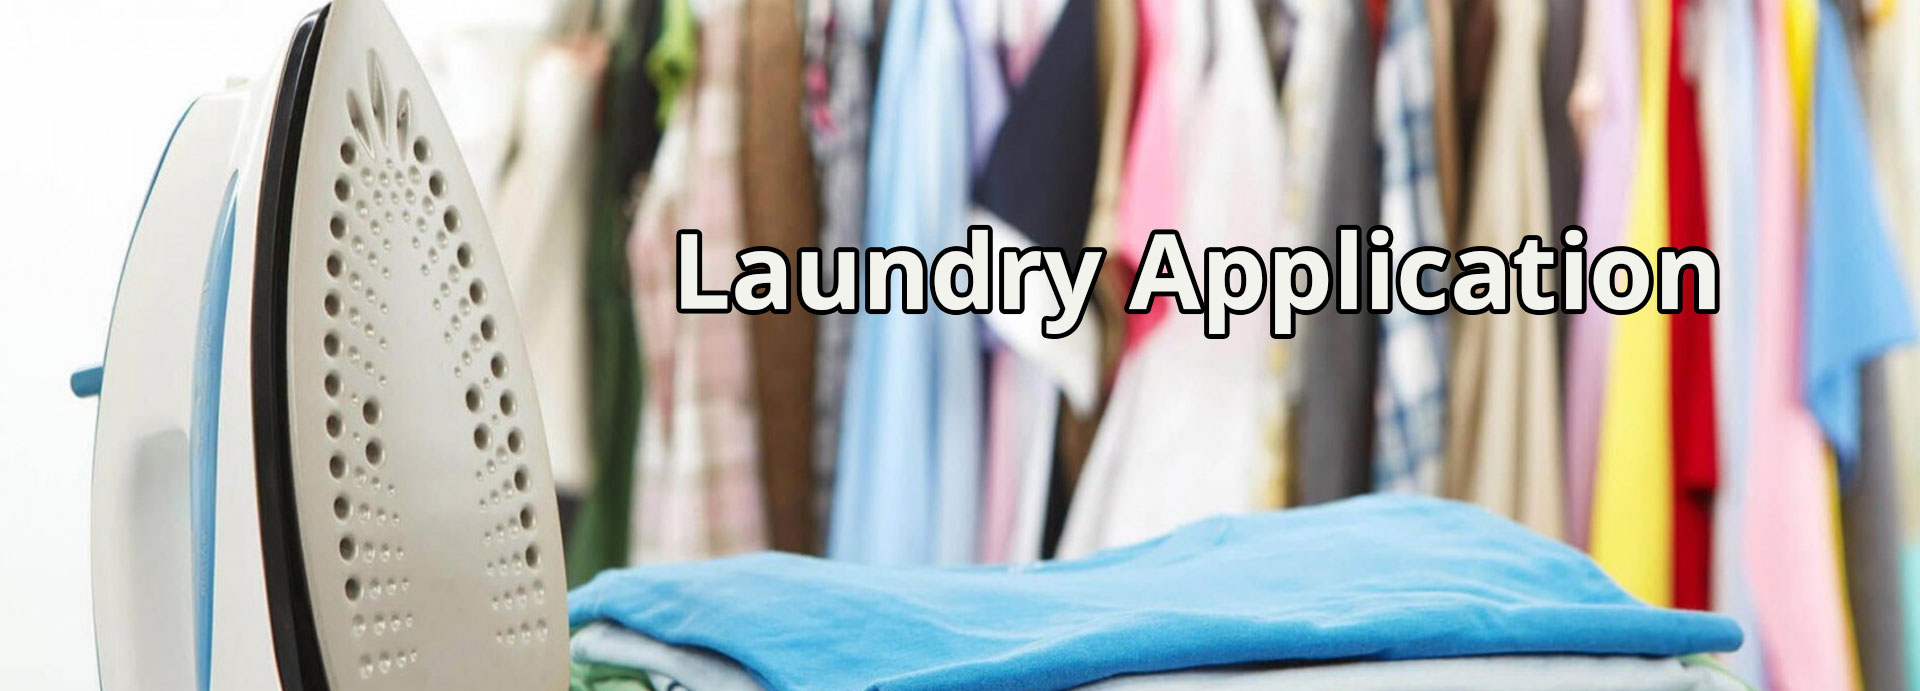 Laundry Application